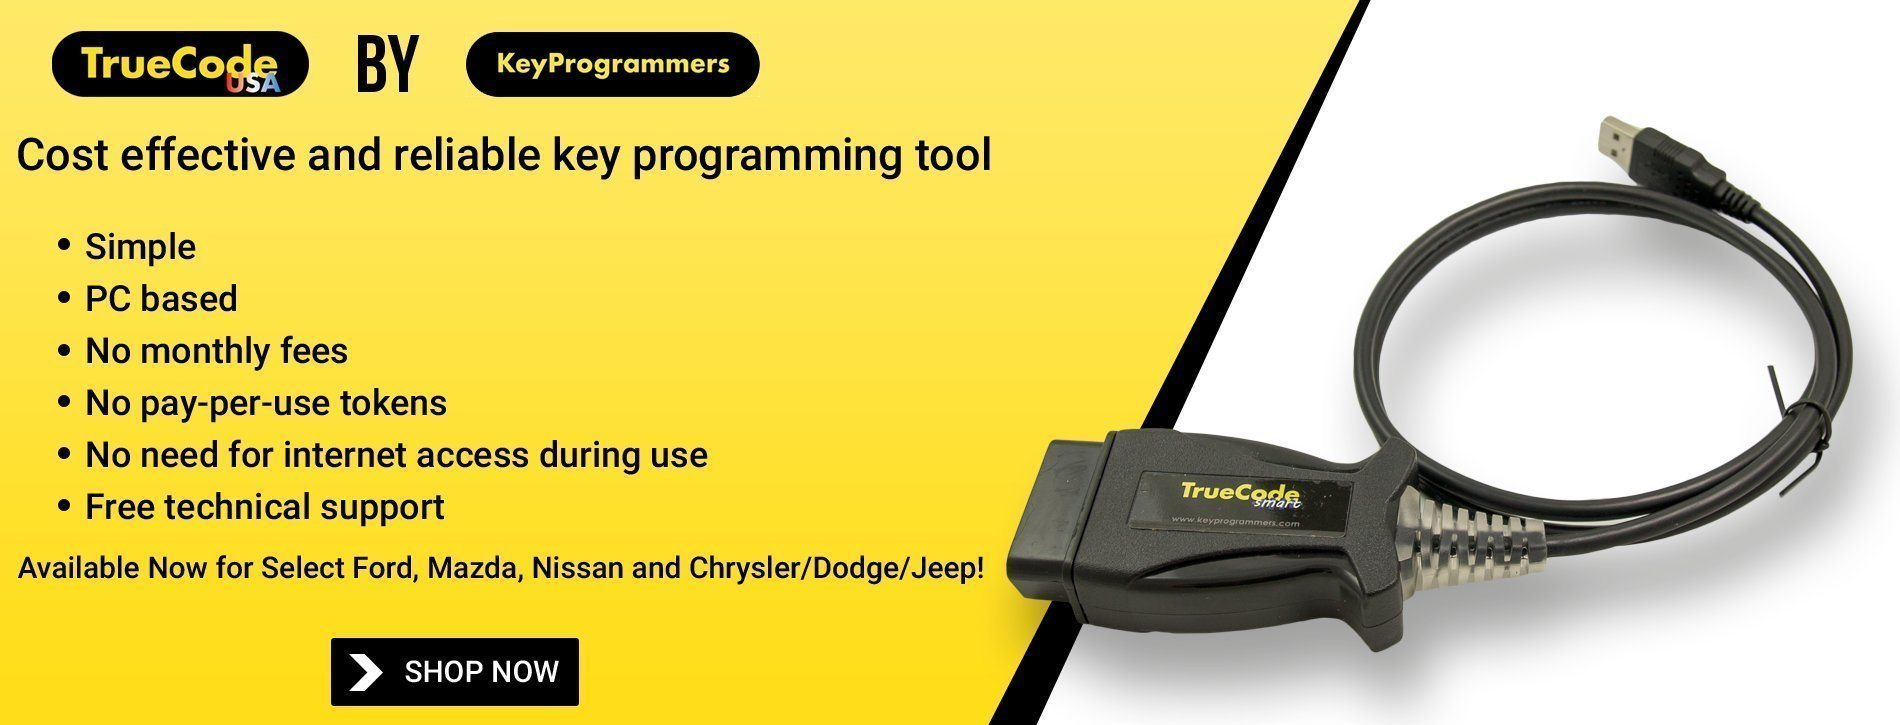 TrueCode: Cost effective and reliable key programming tool